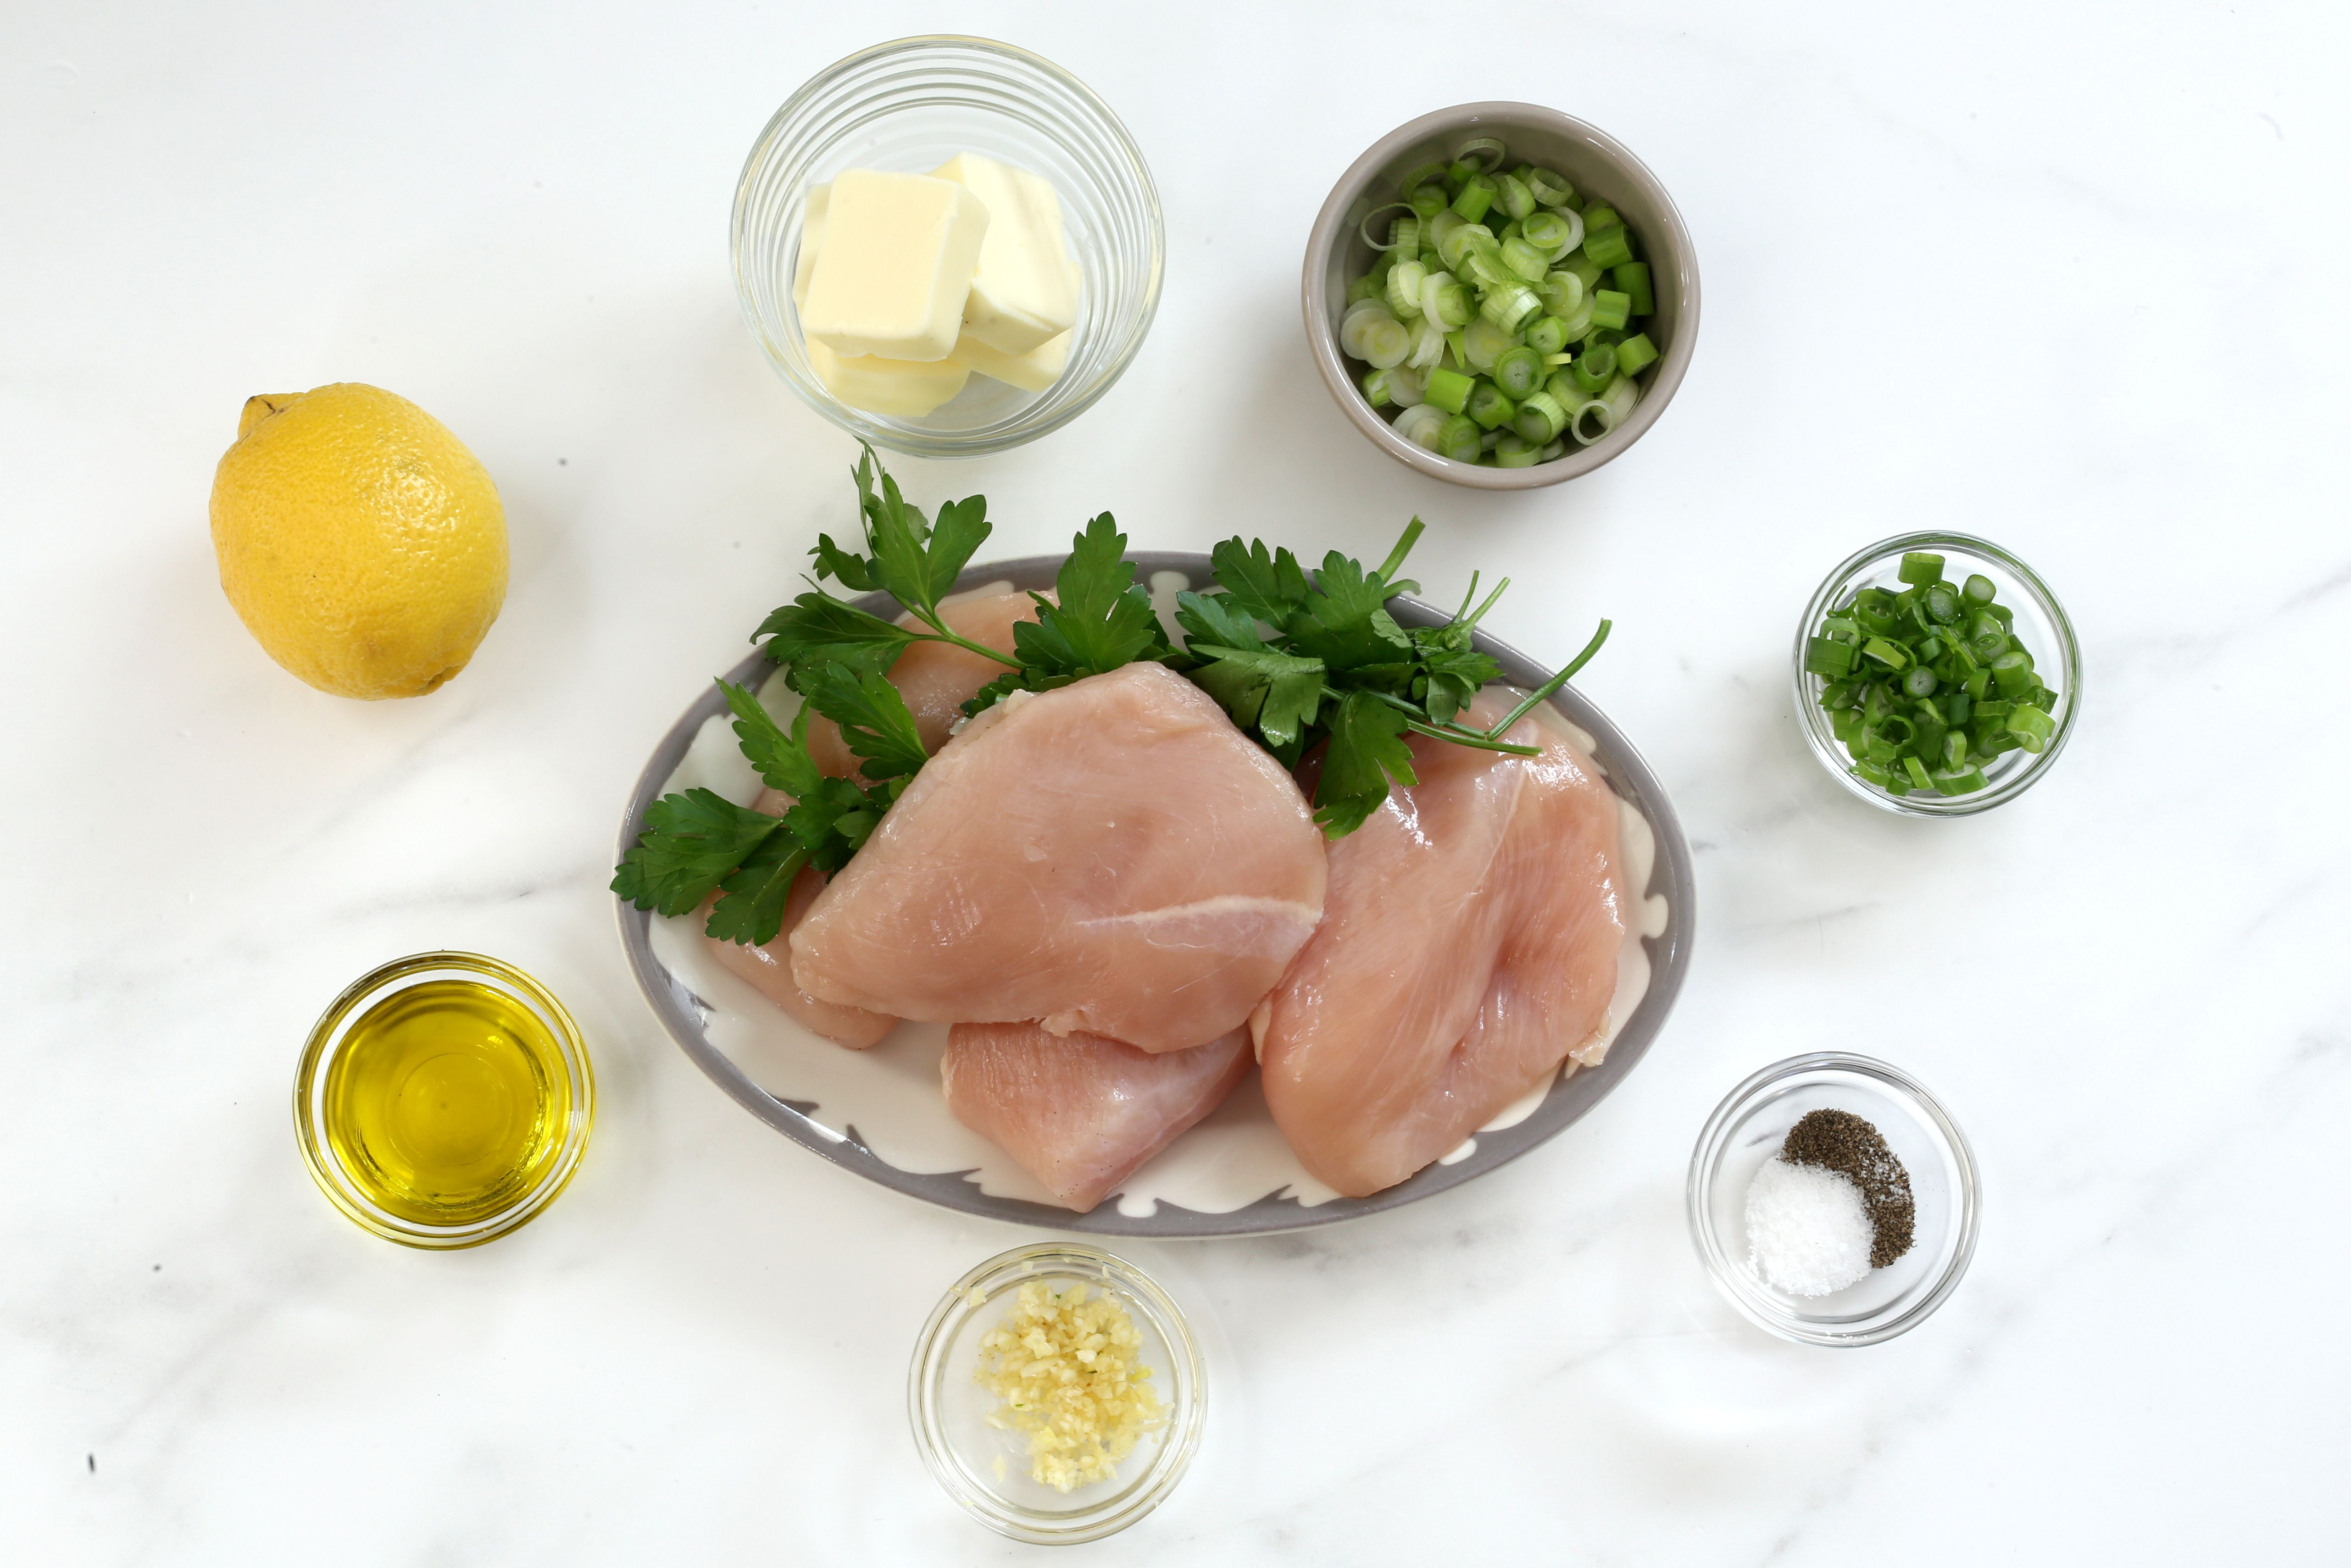 Ingredients for broiled chicken breasts and lemon butter sauce.